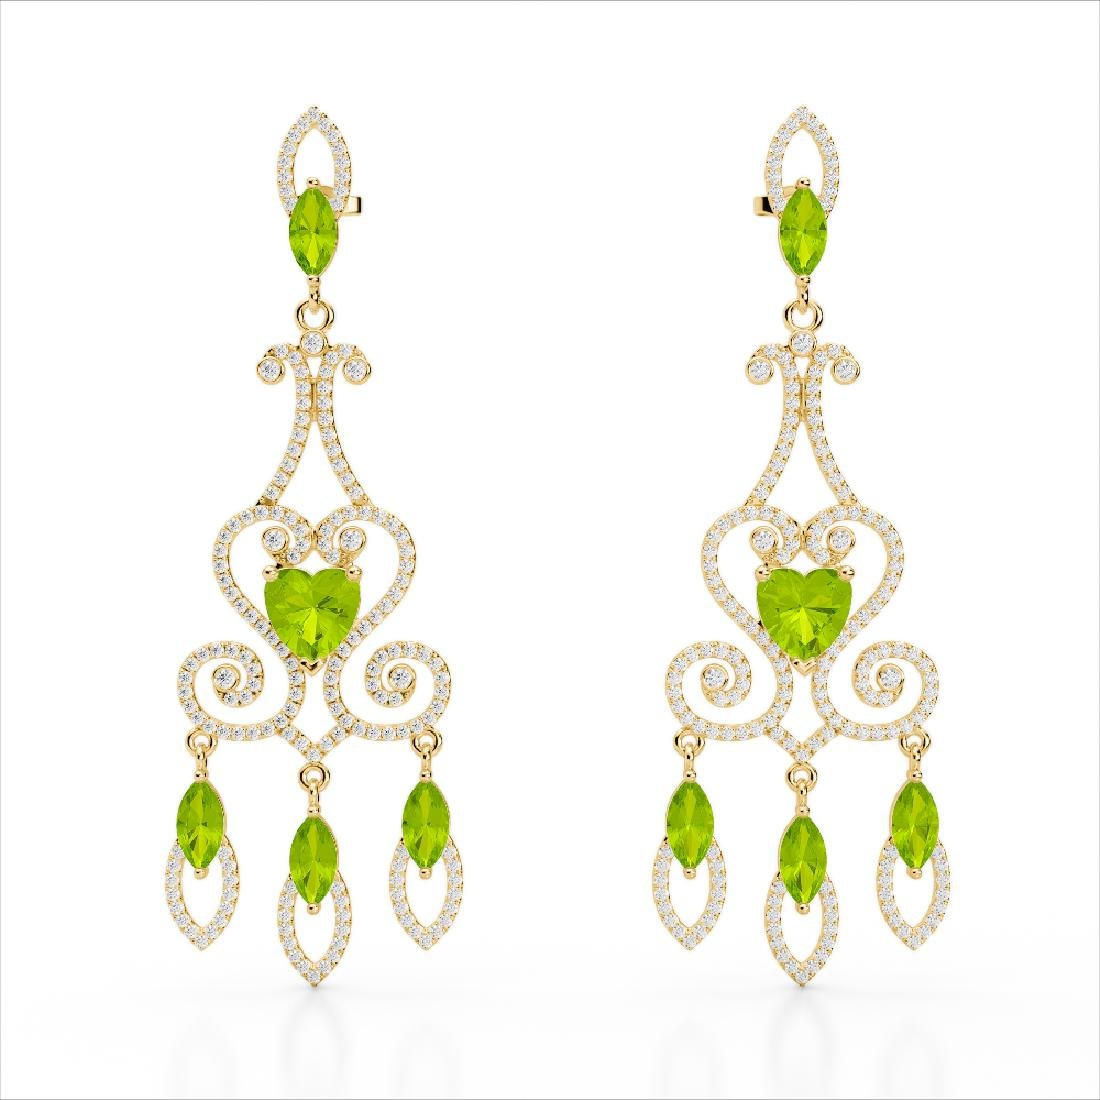 11 CTW Peridot & Micro Pave VS/SI Diamond Earrings 14K - 2